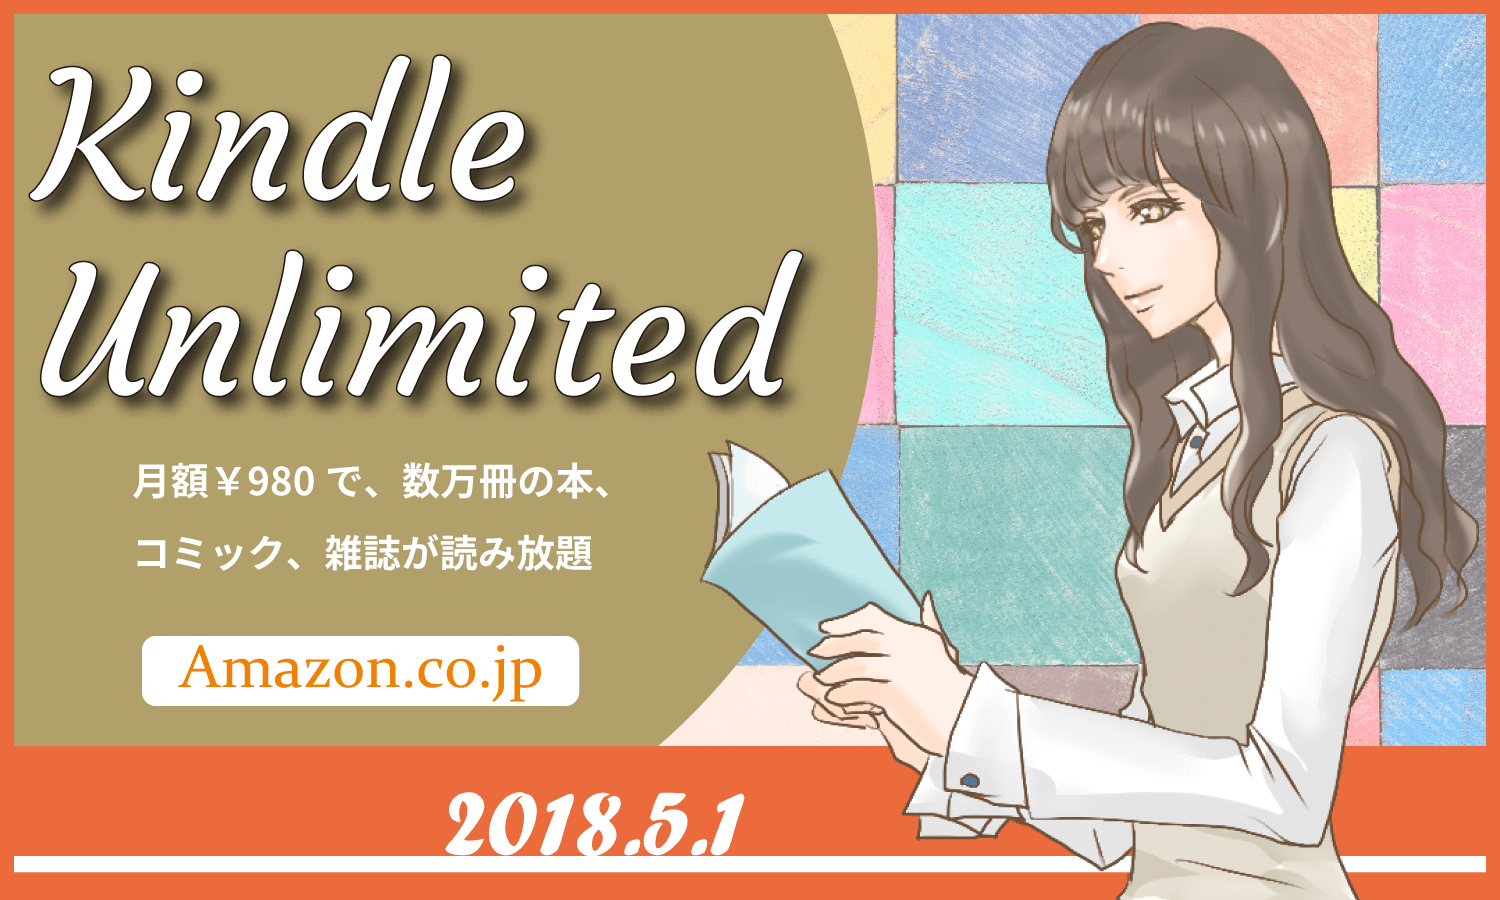 「Kindle Unlimited」で良書を探してみた 2018年5月